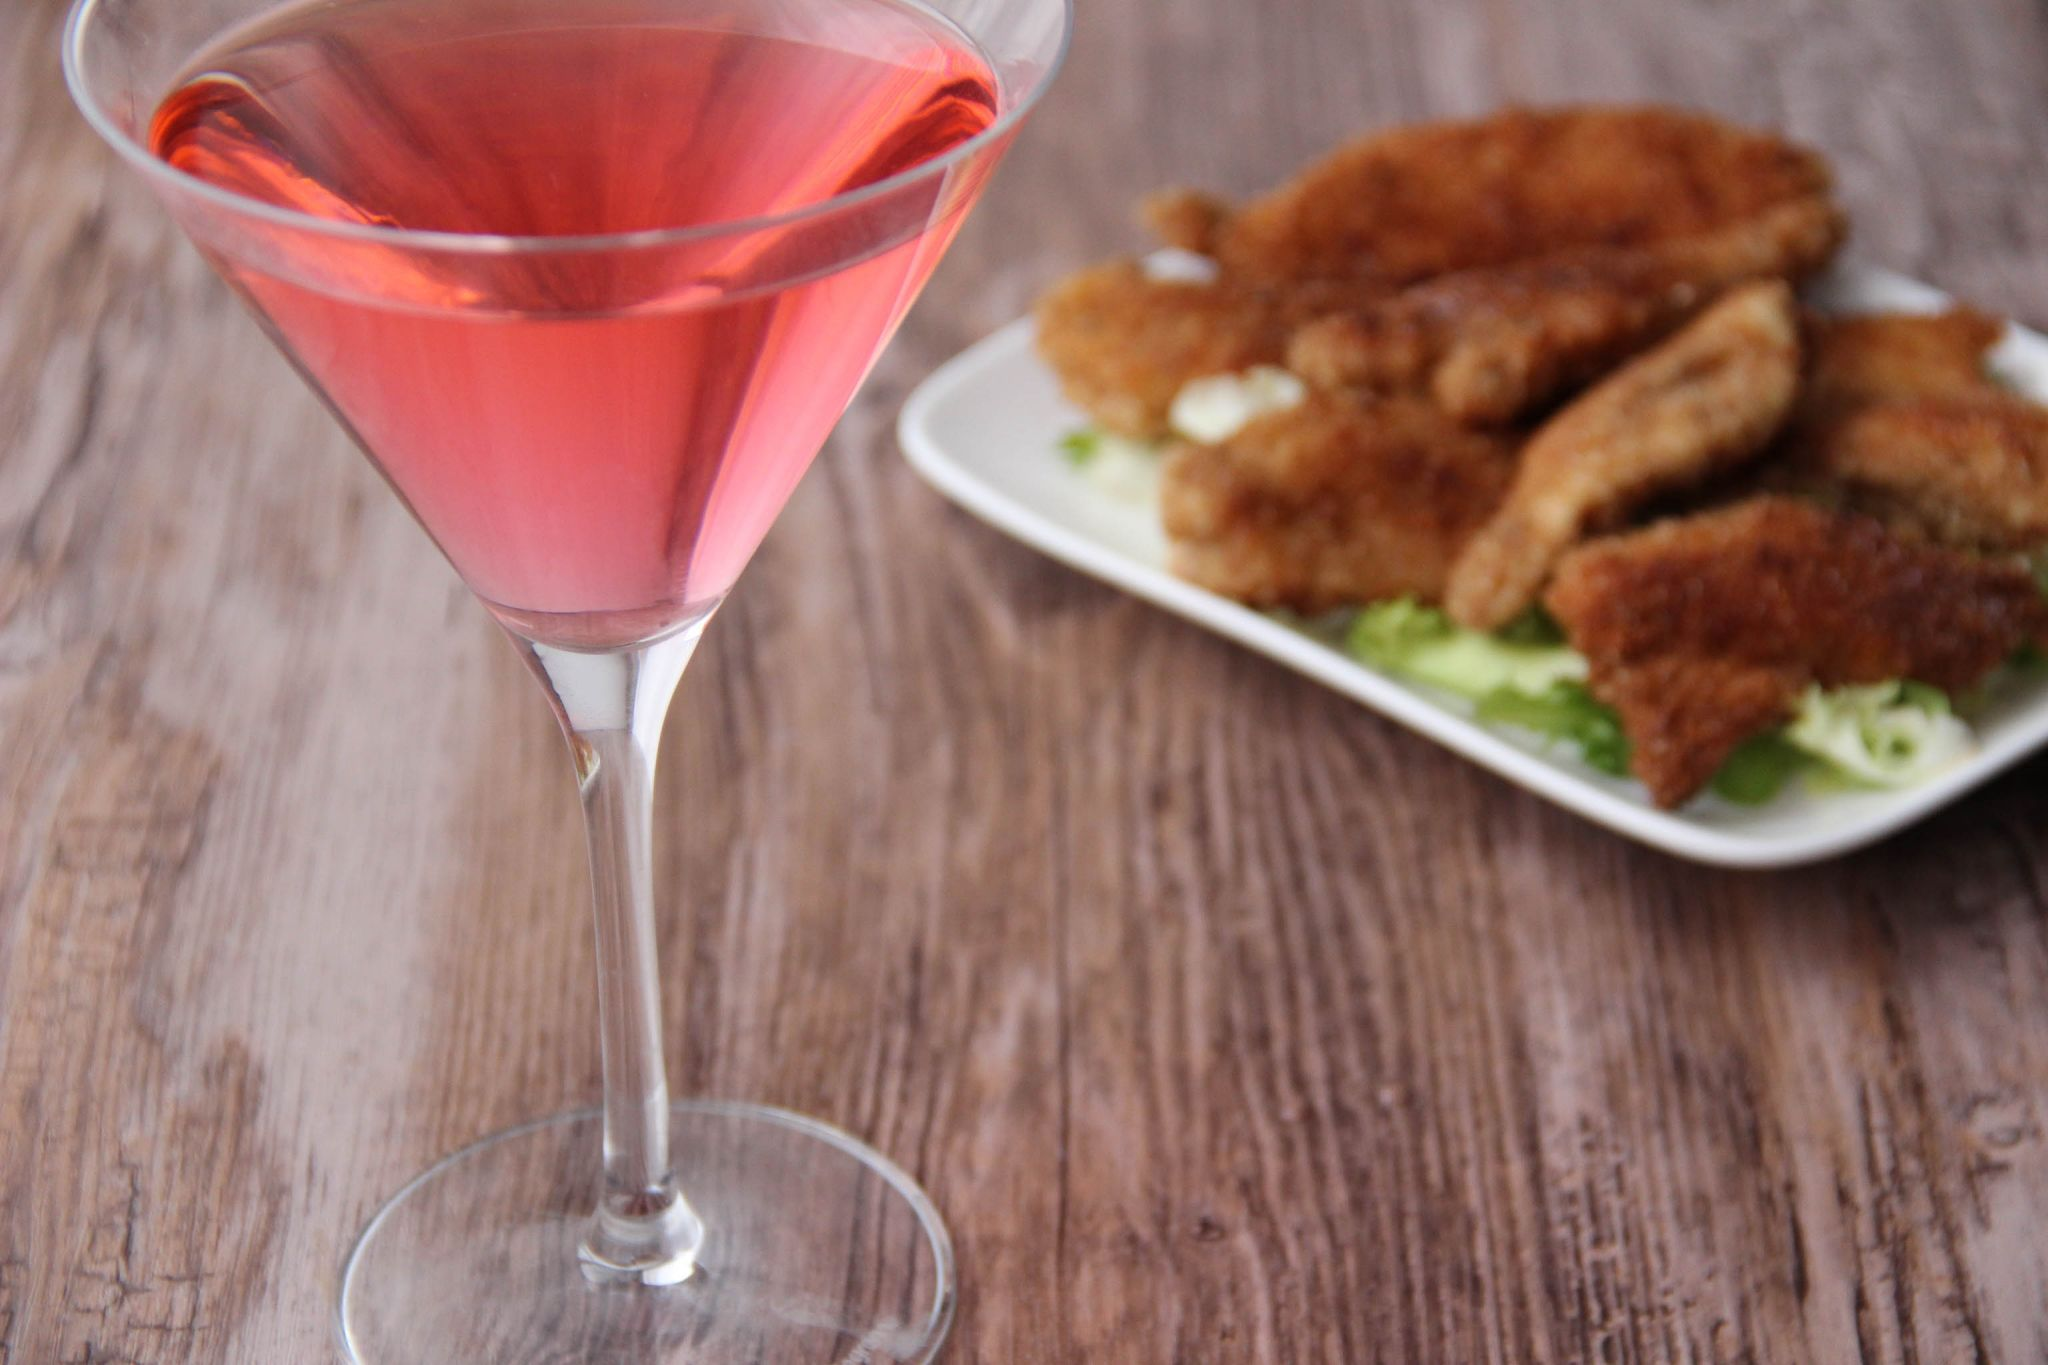 Martini litchi cocktail and chicken nuggets